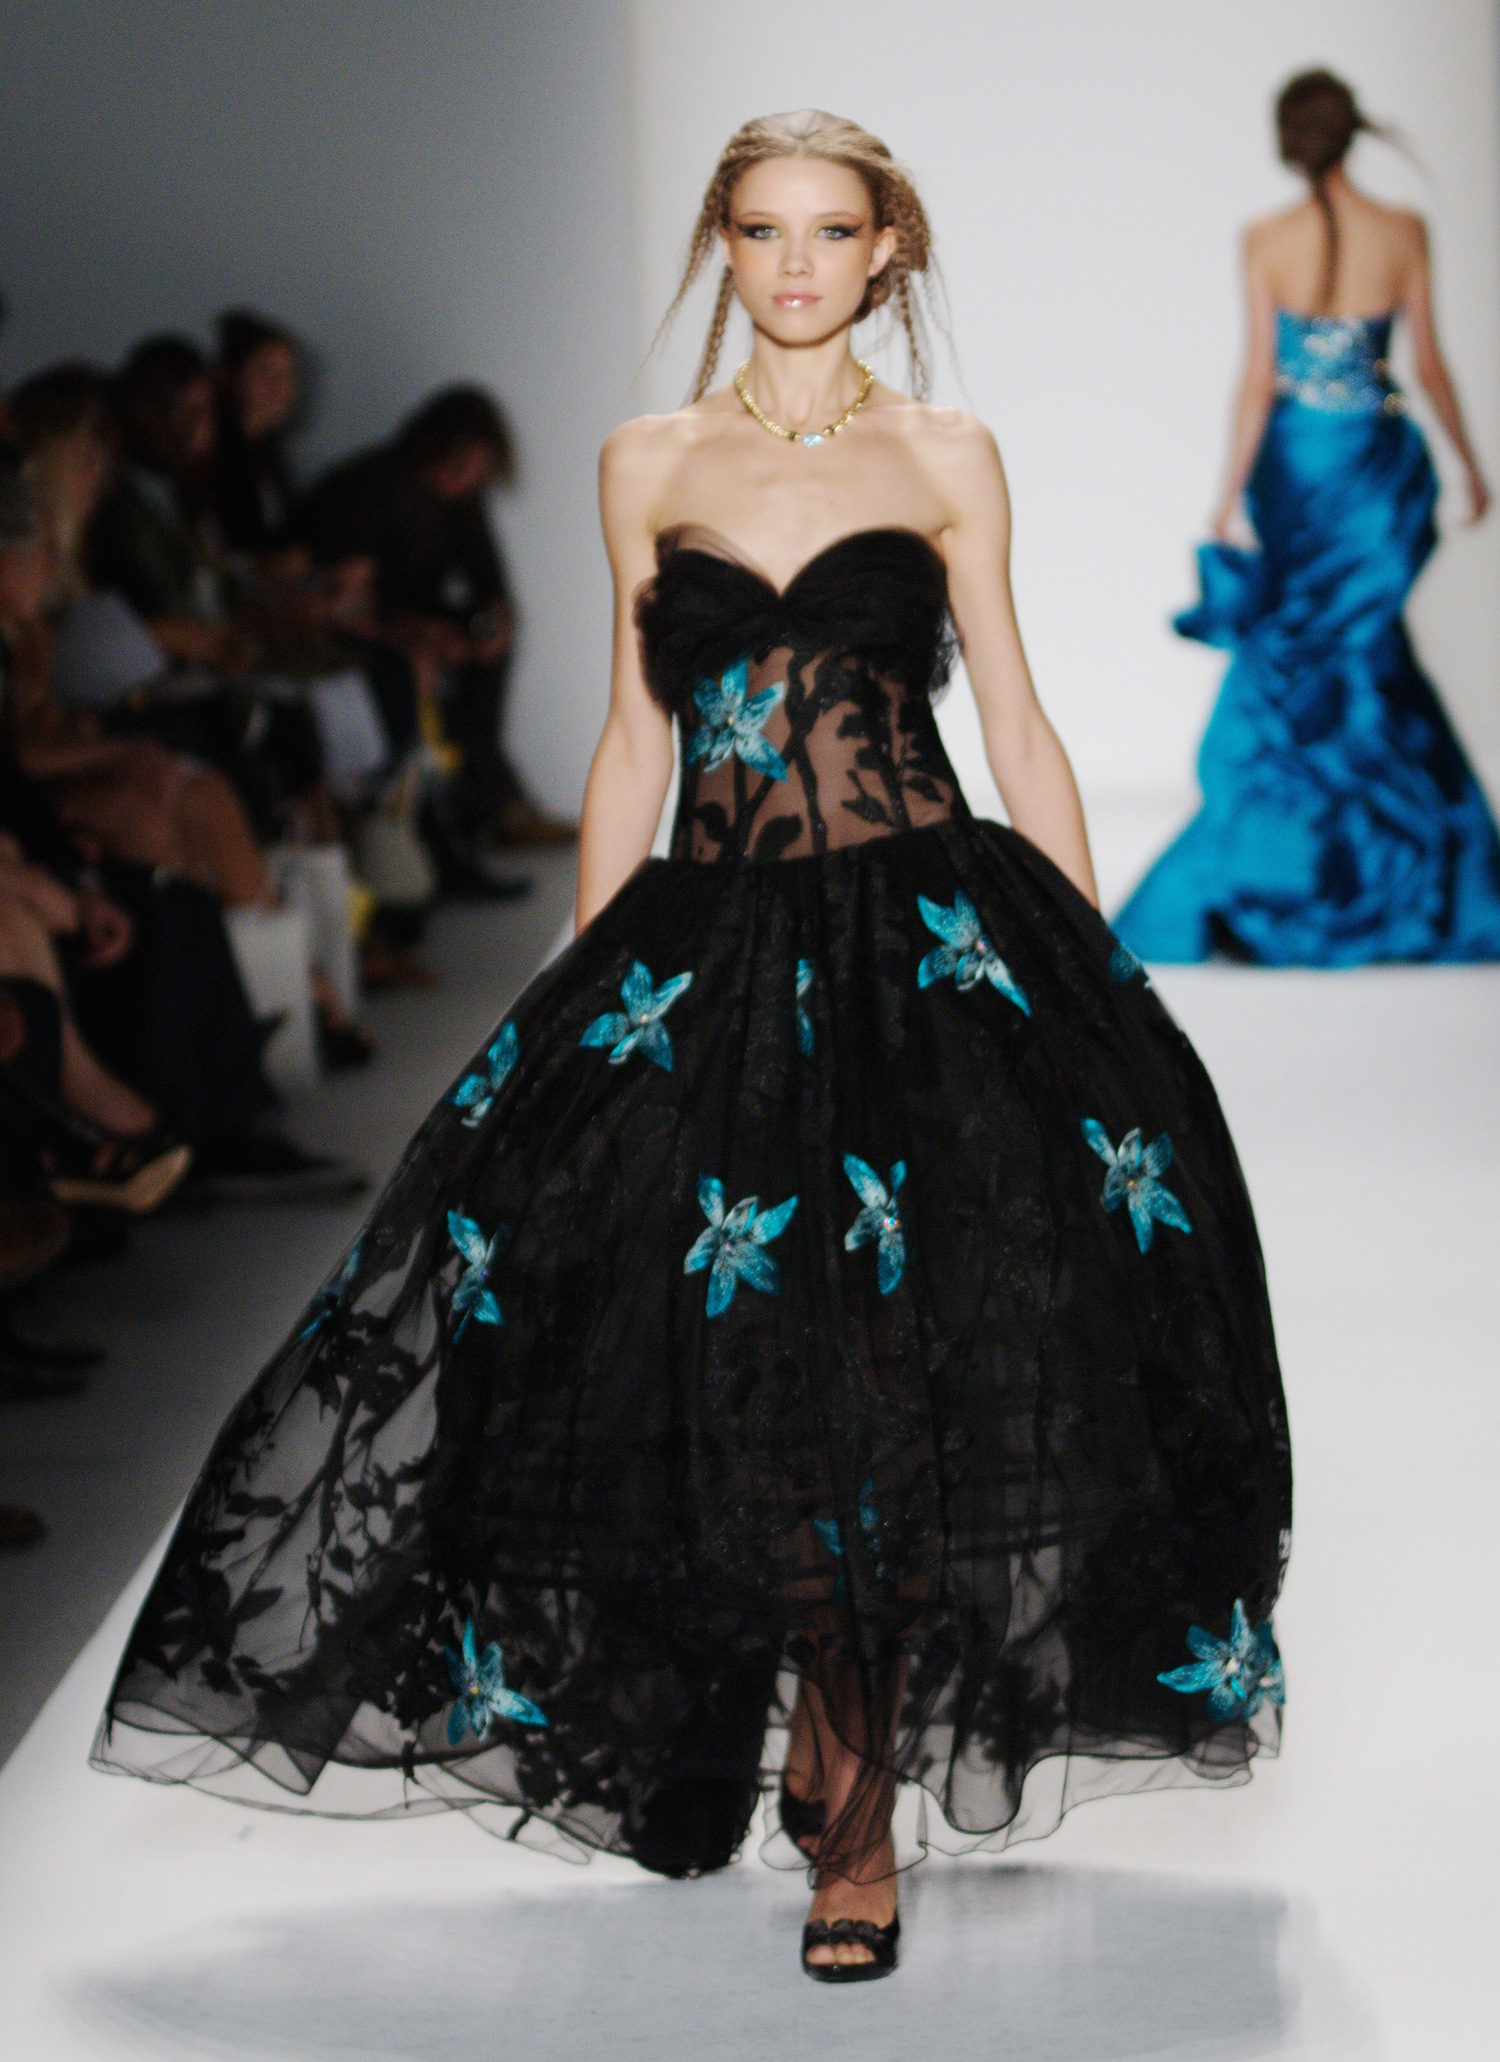 Black Sweetheart Sheer Corset Dress with Floral Embroidery — Globa Moda